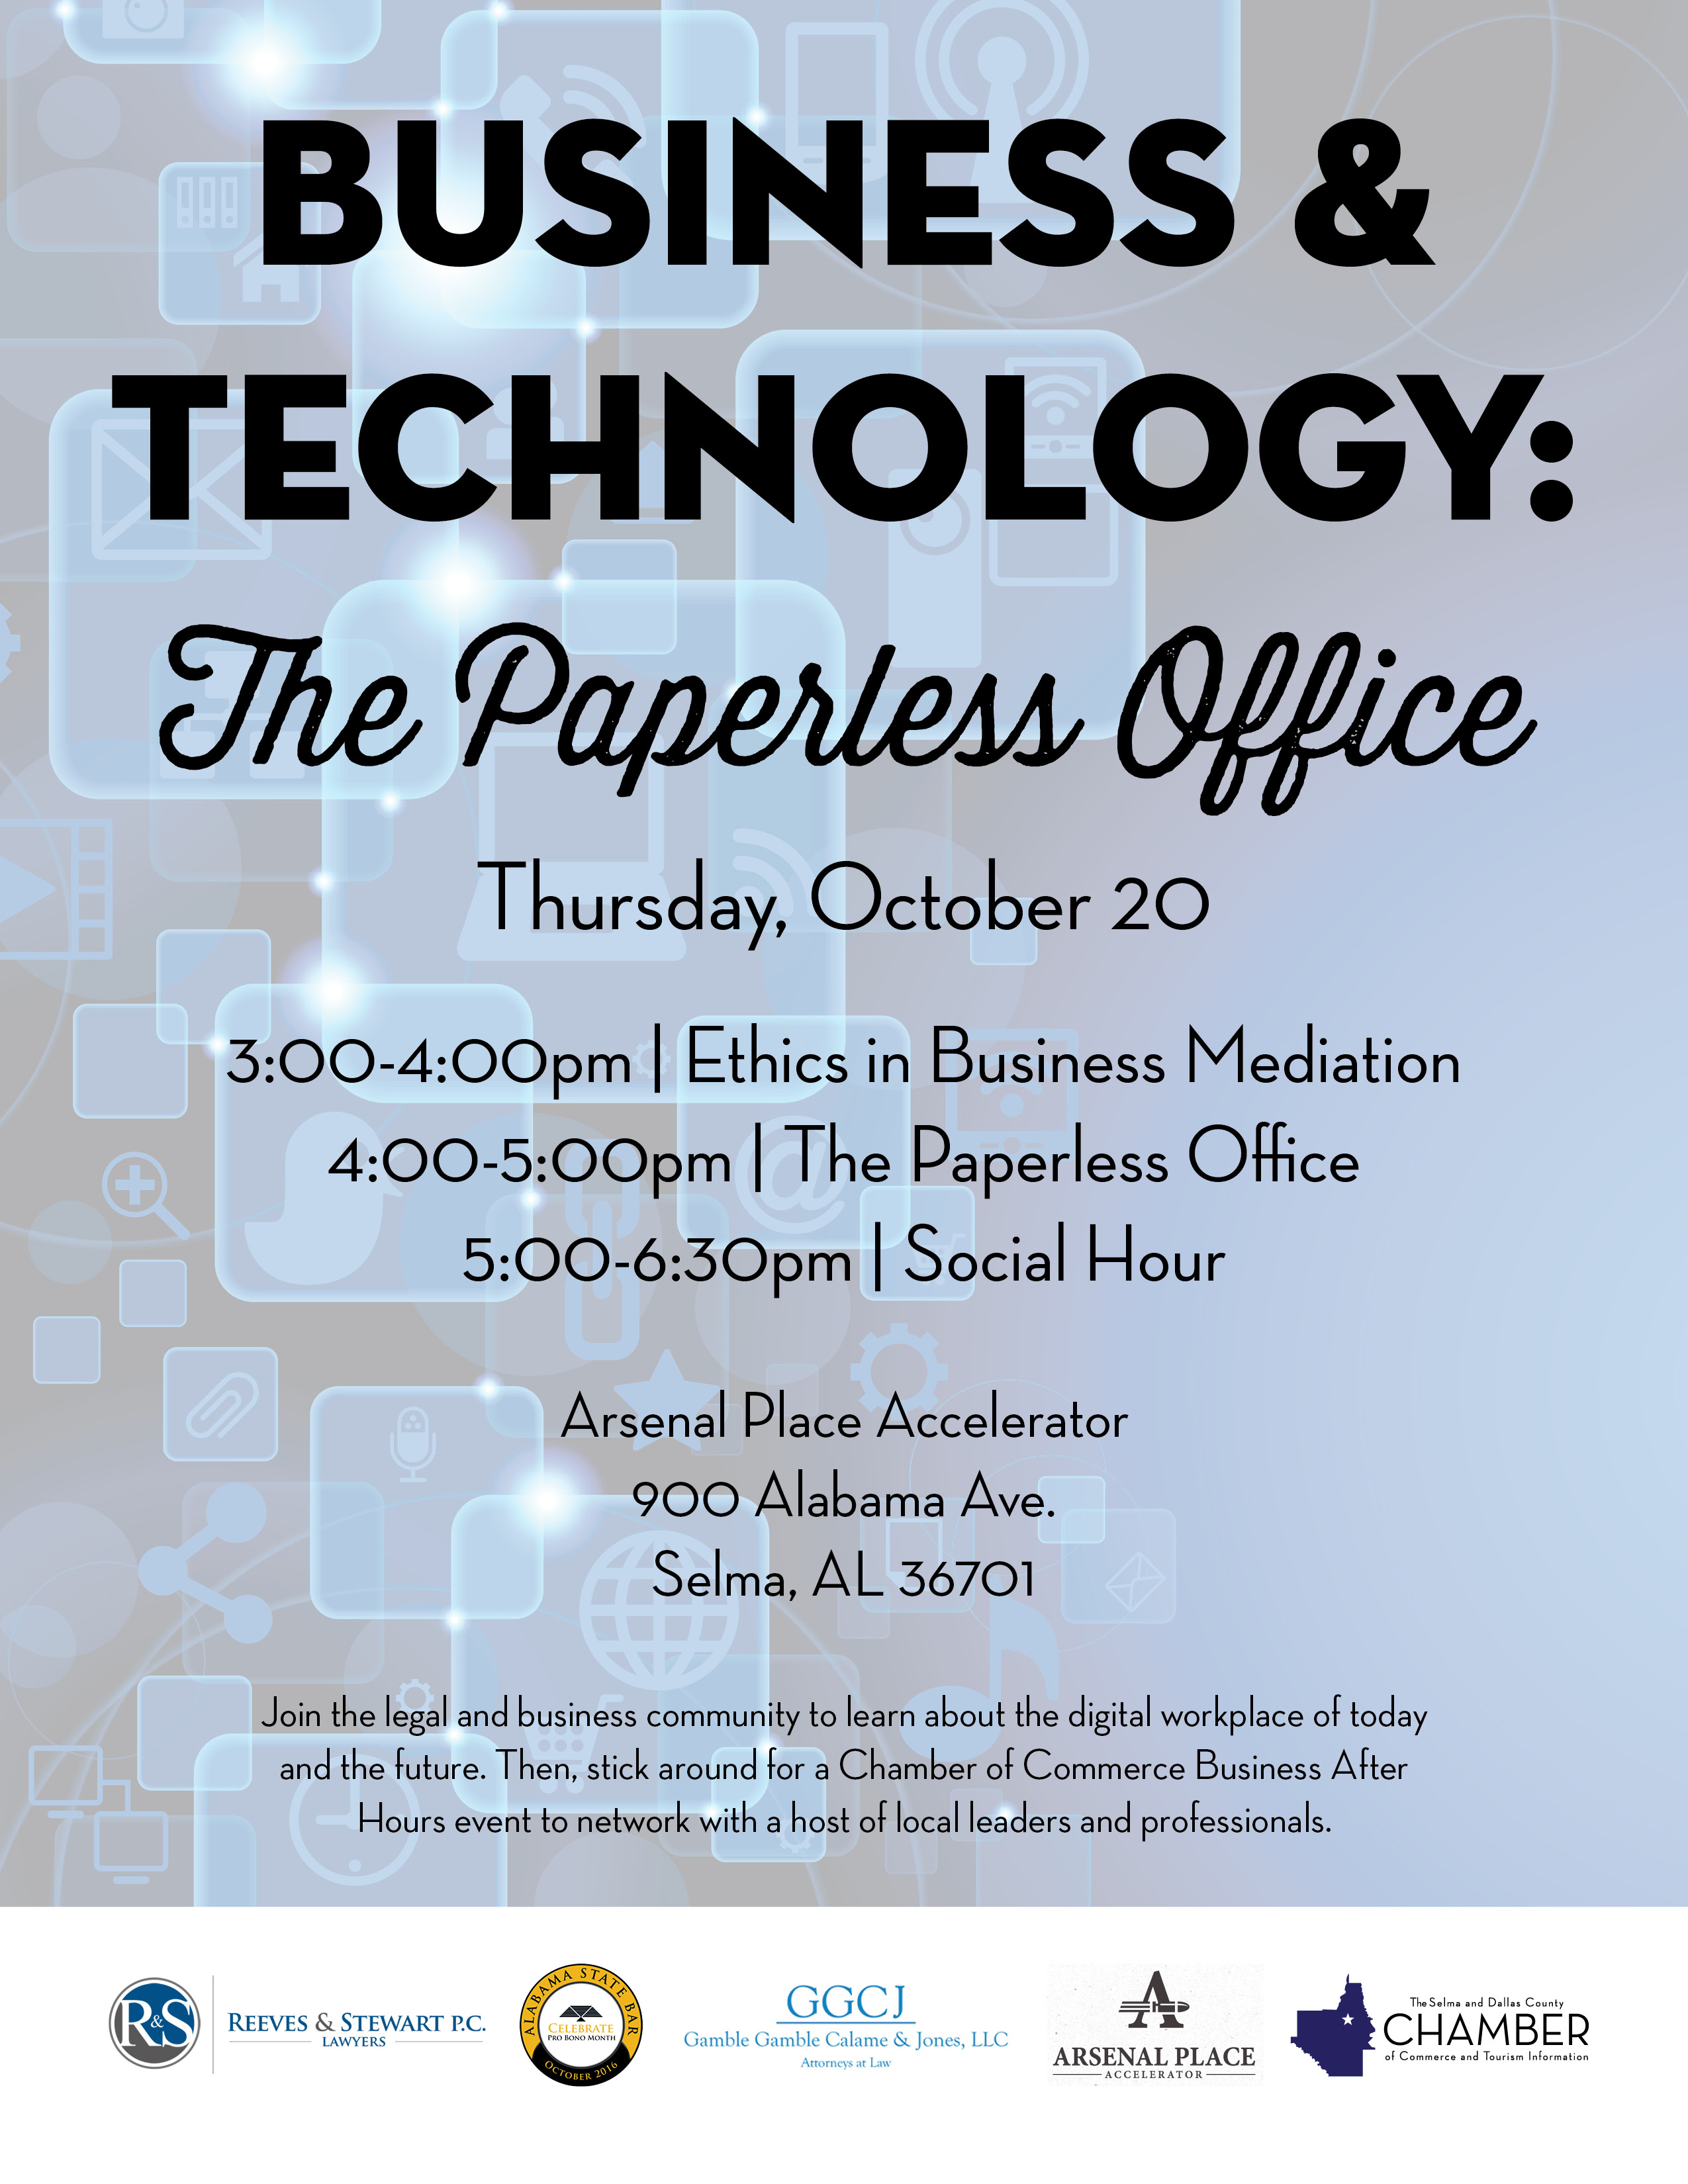 Business Technology The Paperless Office